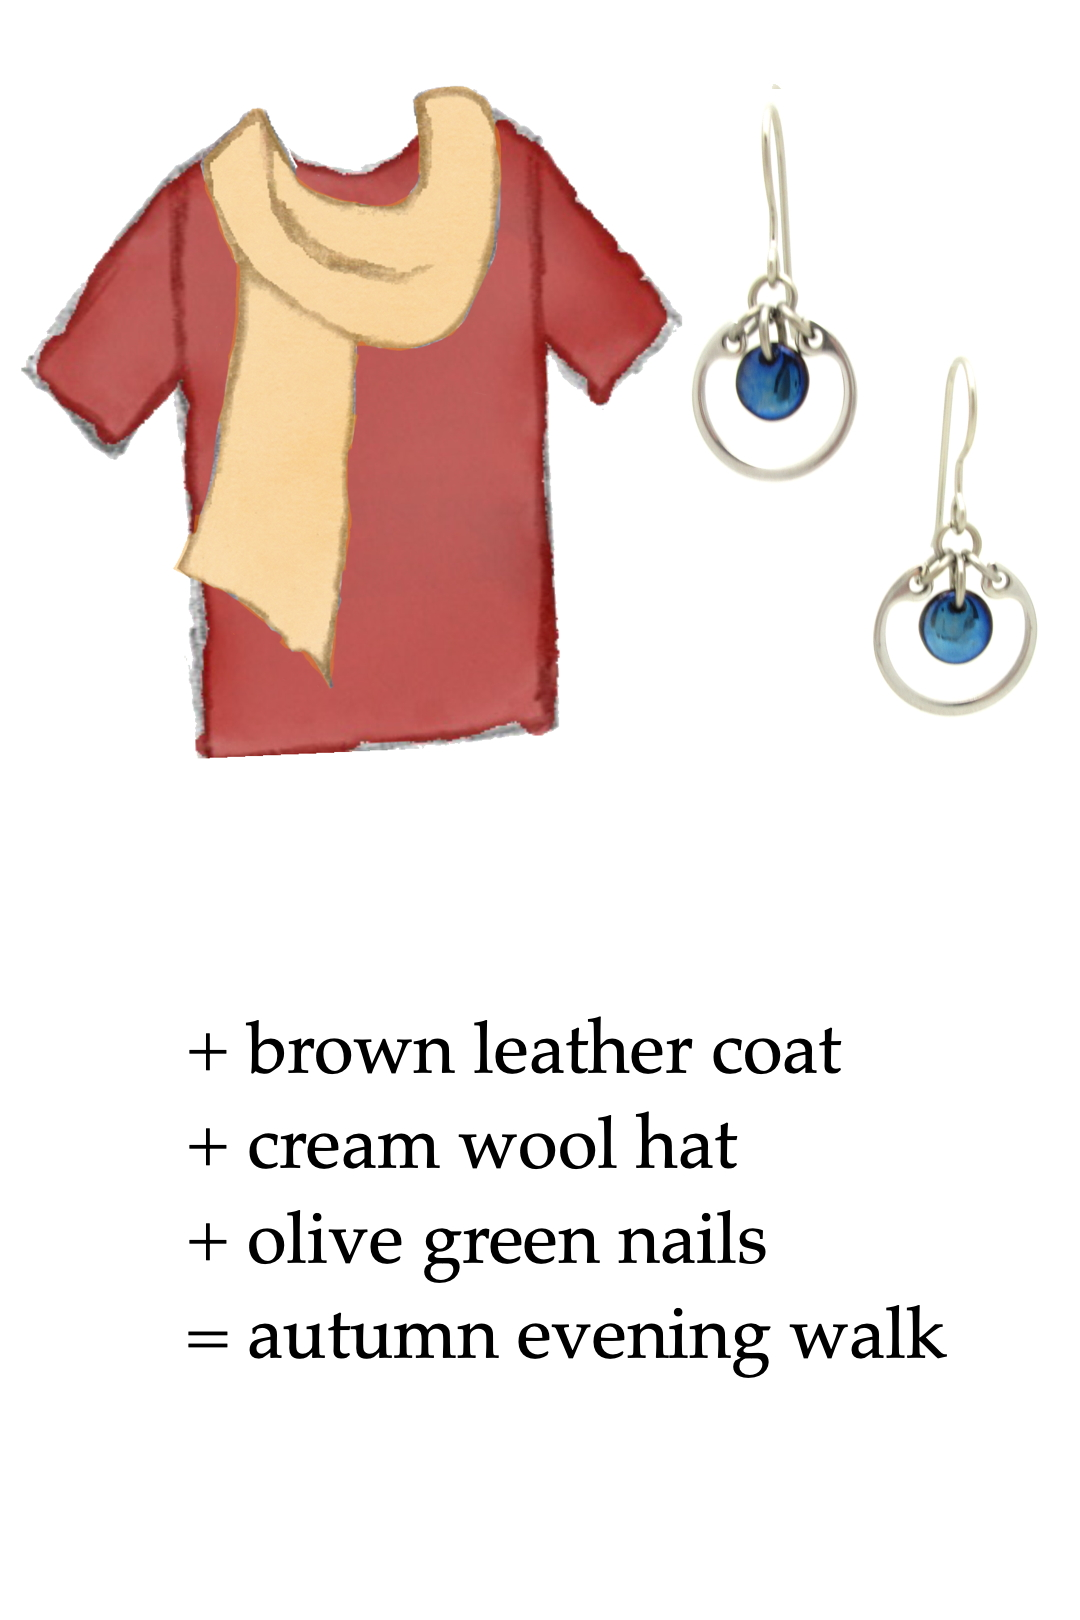 style sketch of a red tee and pale orange scarf with modern circle navy blue and silver-colored earrings; text says + brown leather coat + cream wool hat + olive green nails = autumn evening walk